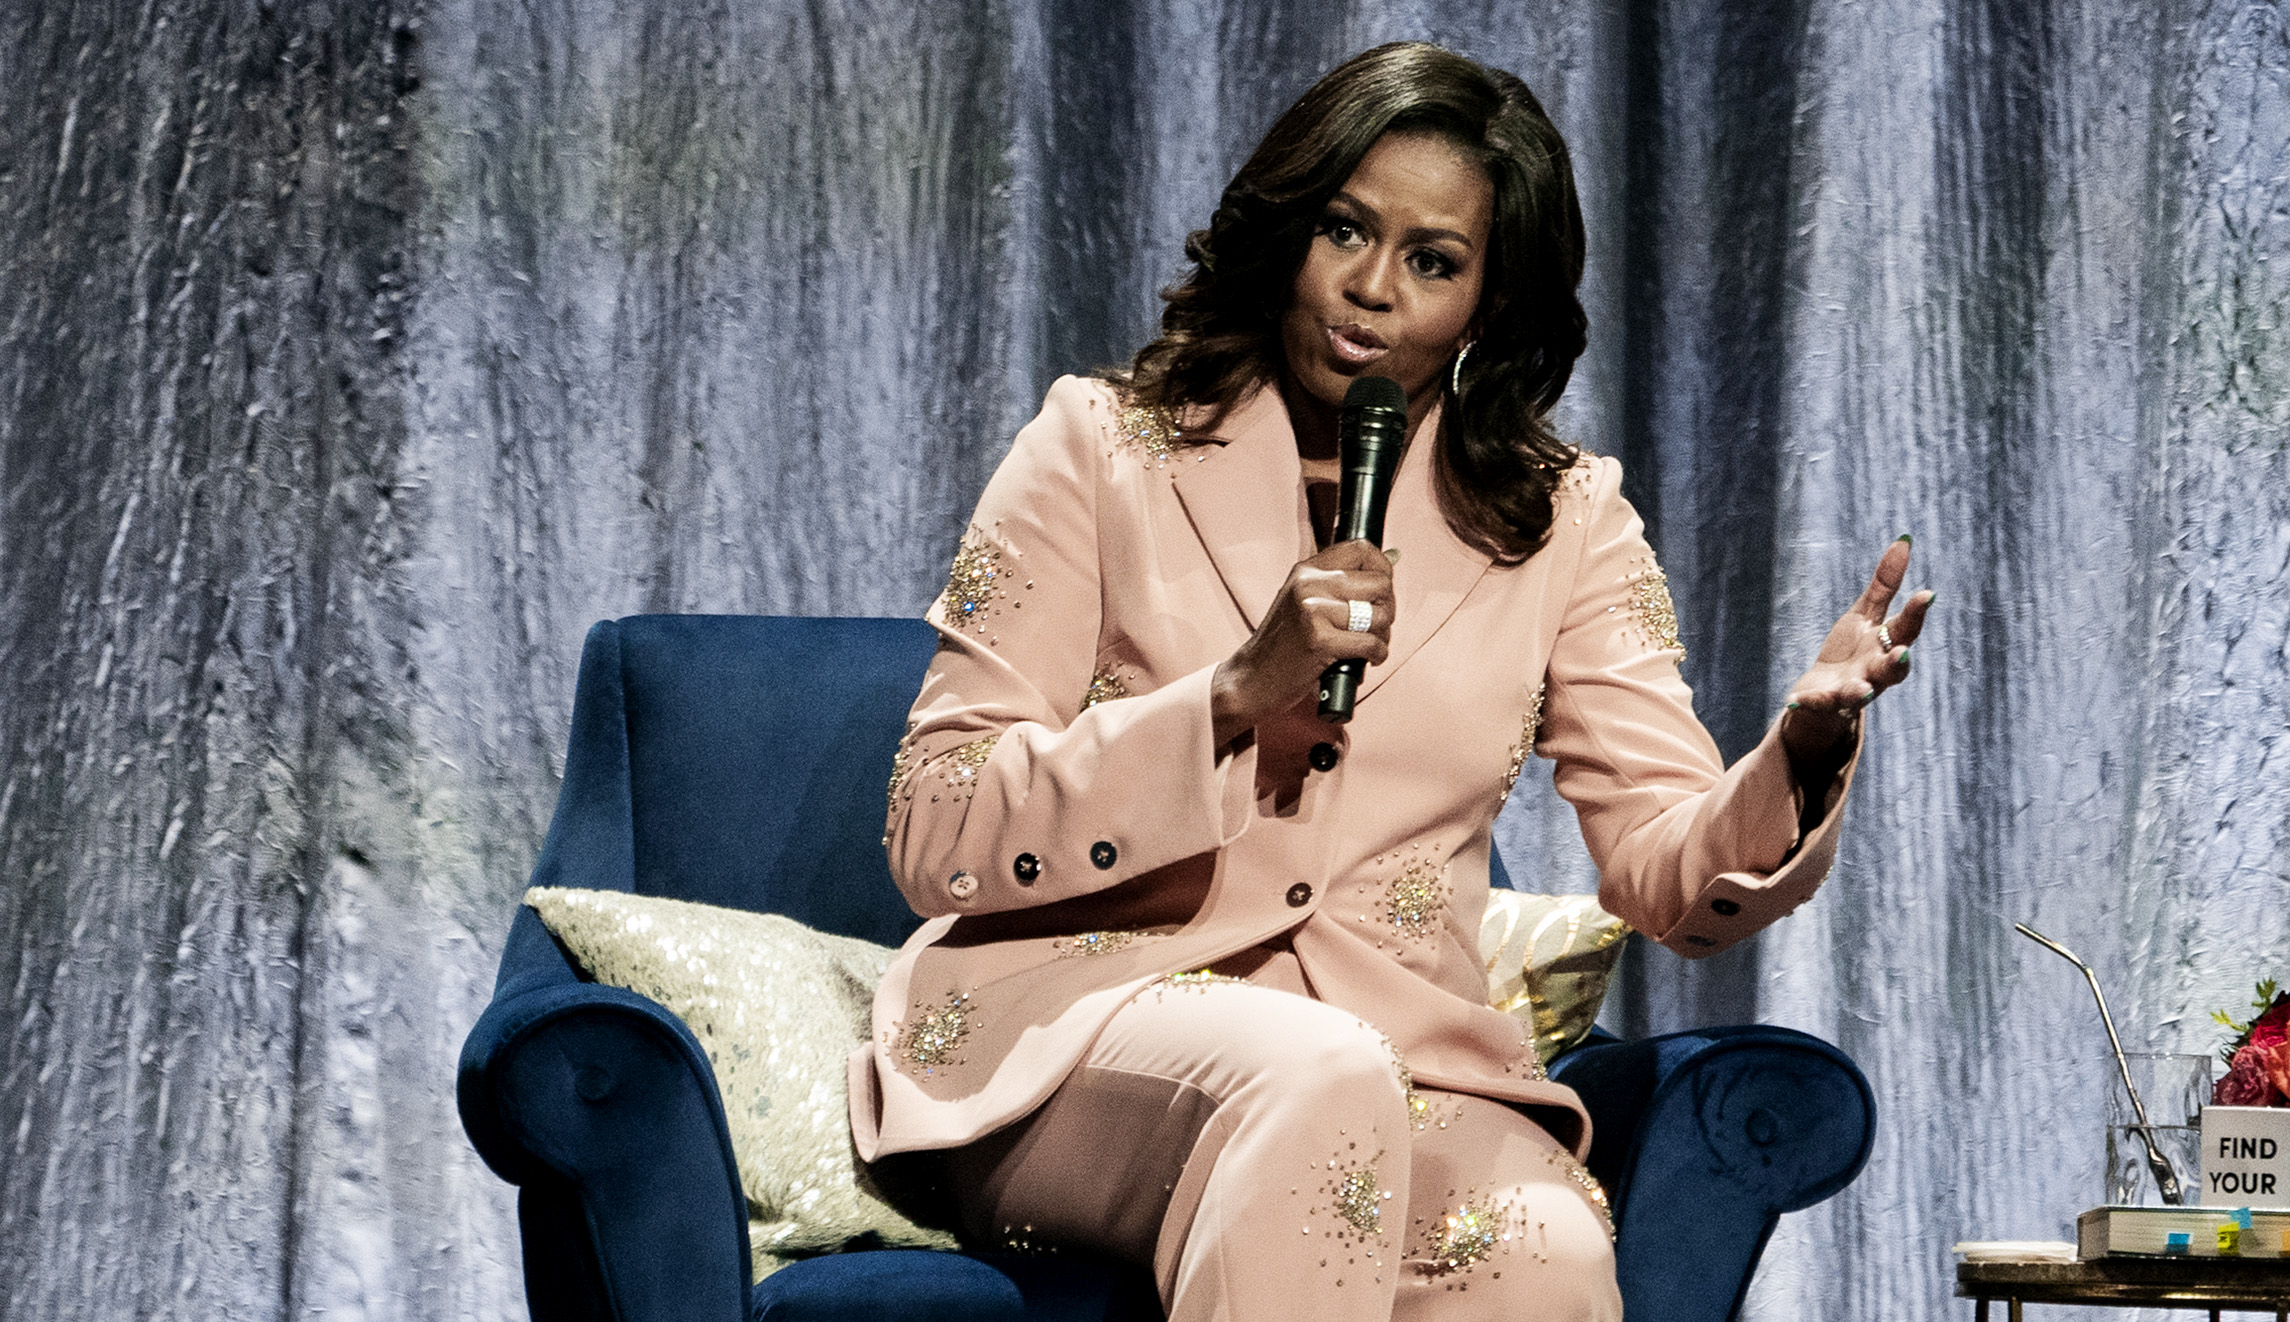 washingtonexaminer.com - Michelle Obama is hopelessly out of touch with the reality of divorced families